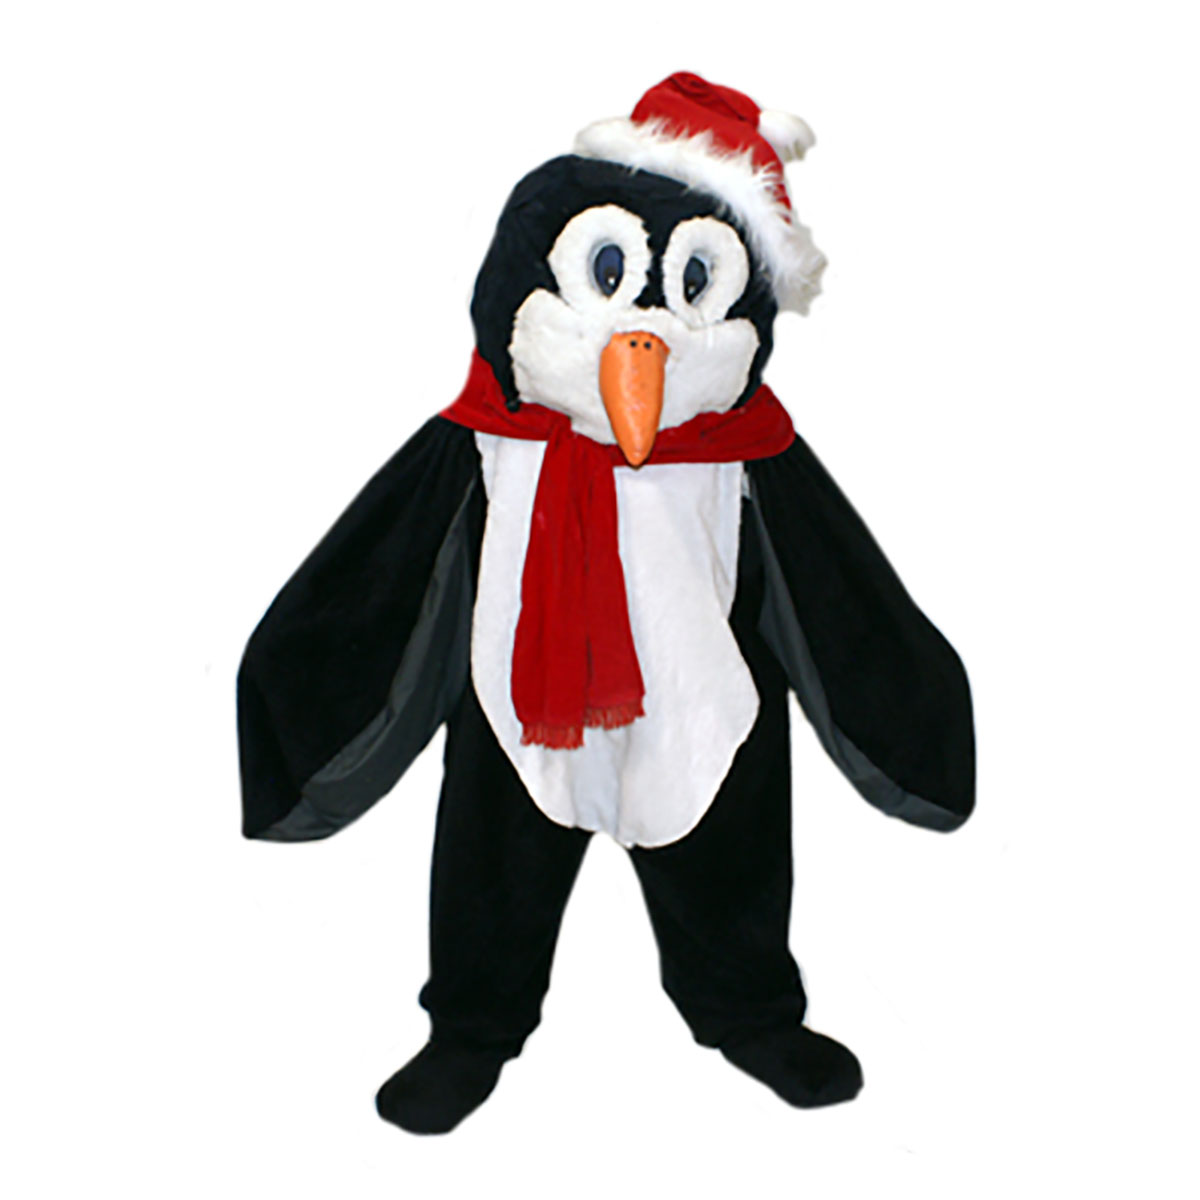 Penguin Costume 2X/Tall